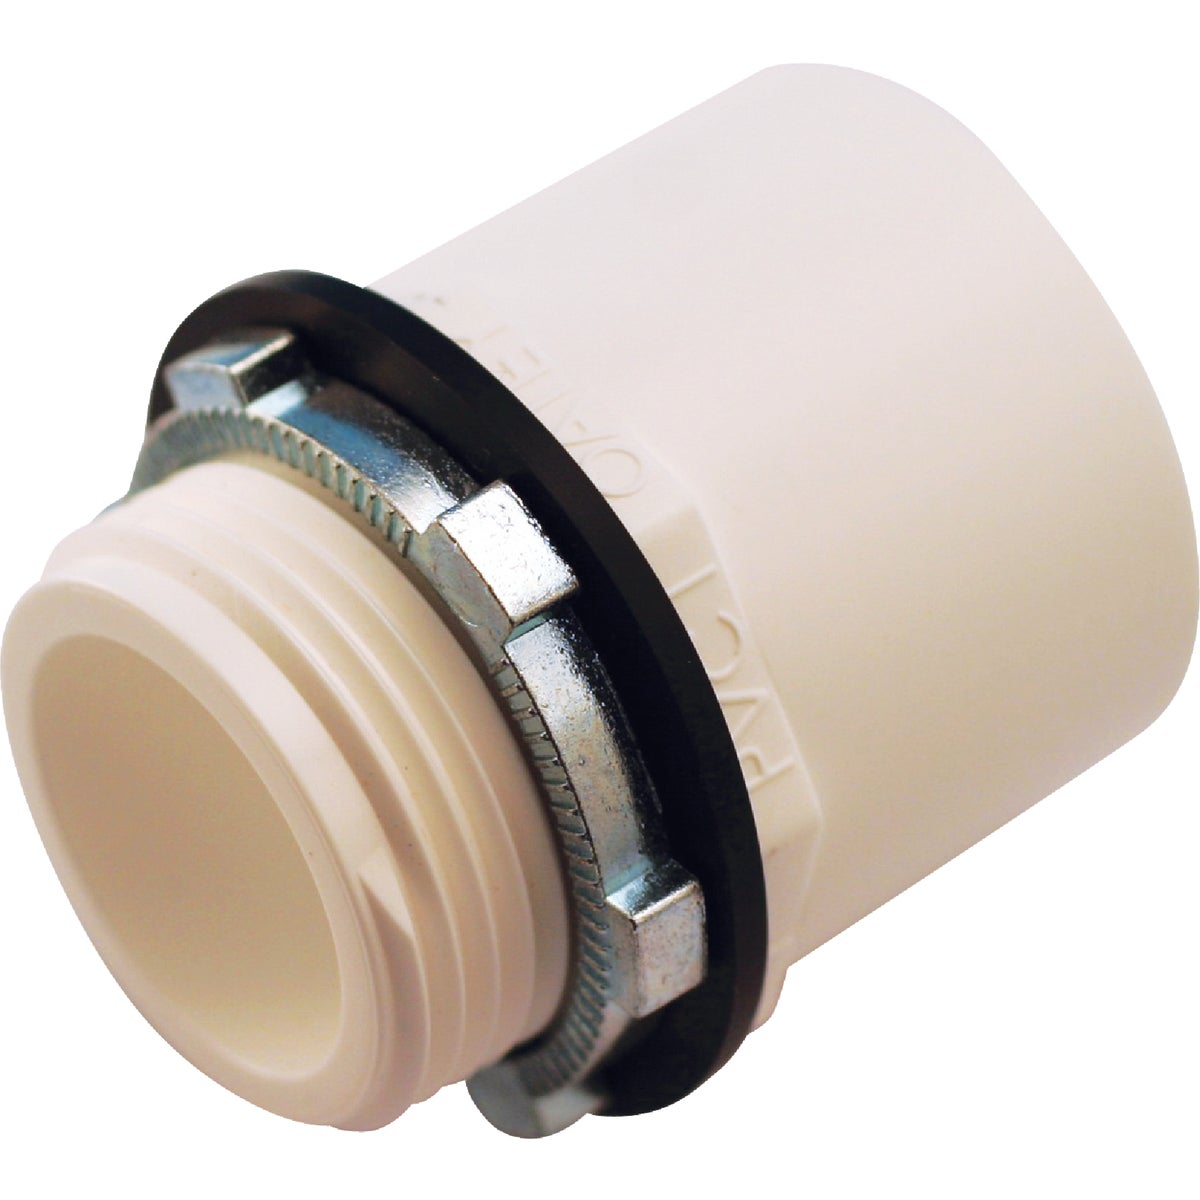 "1"" WTR HTR PAN ADAPTER - 34088 by Oatey Scs"